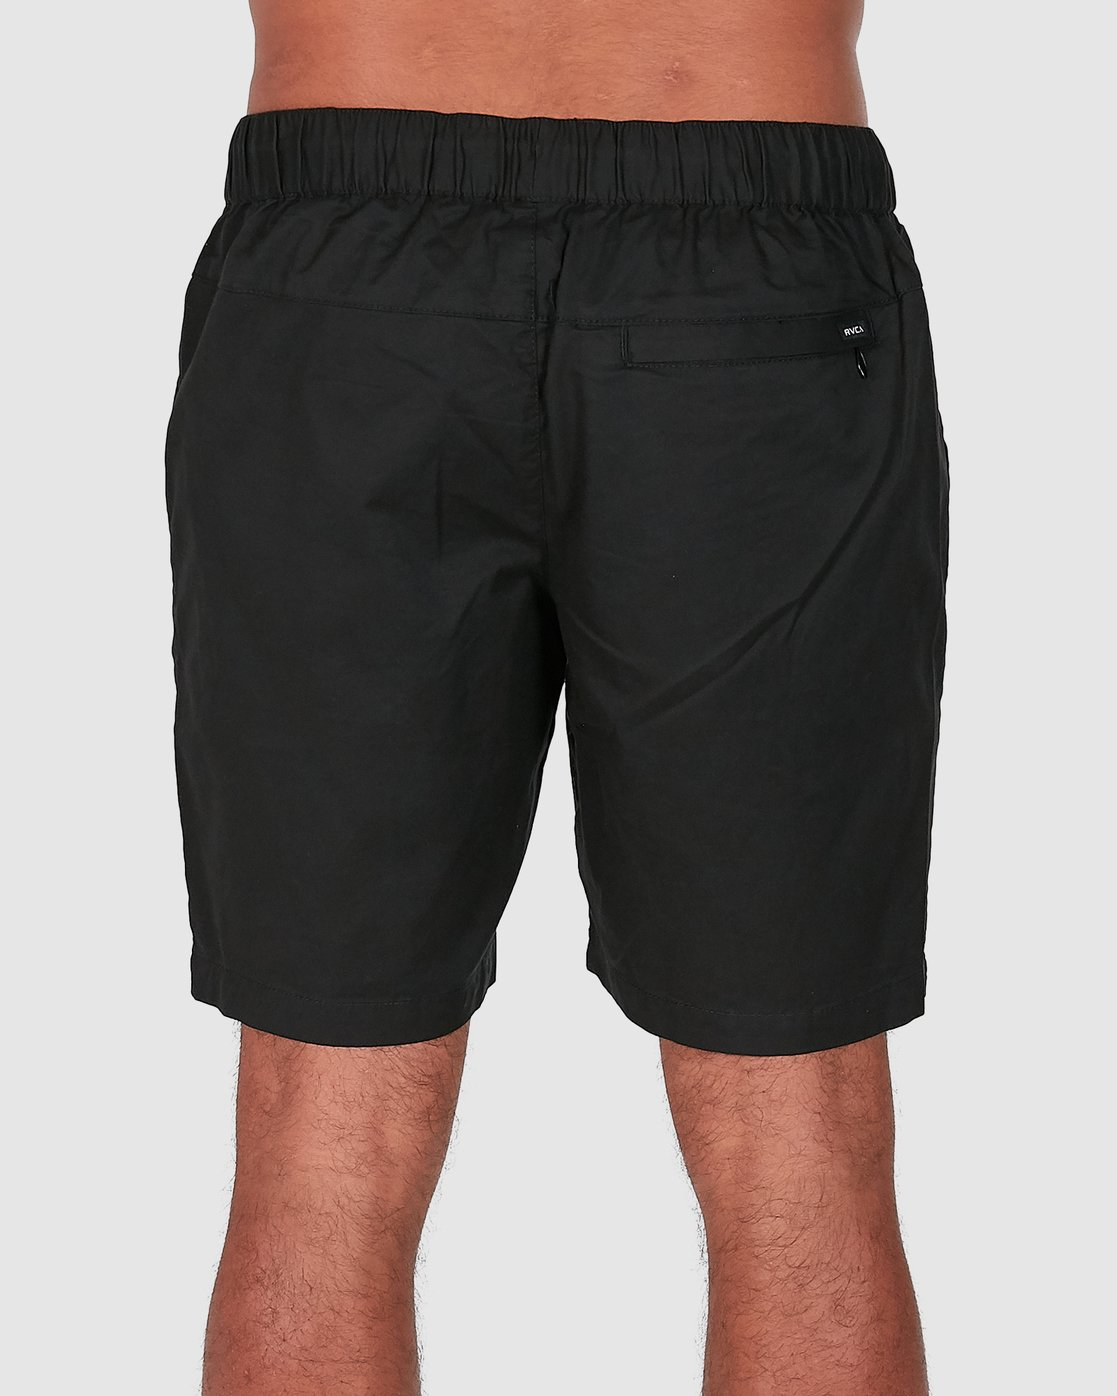 10 SPECTRUM SHORTS Black R107311 RVCA